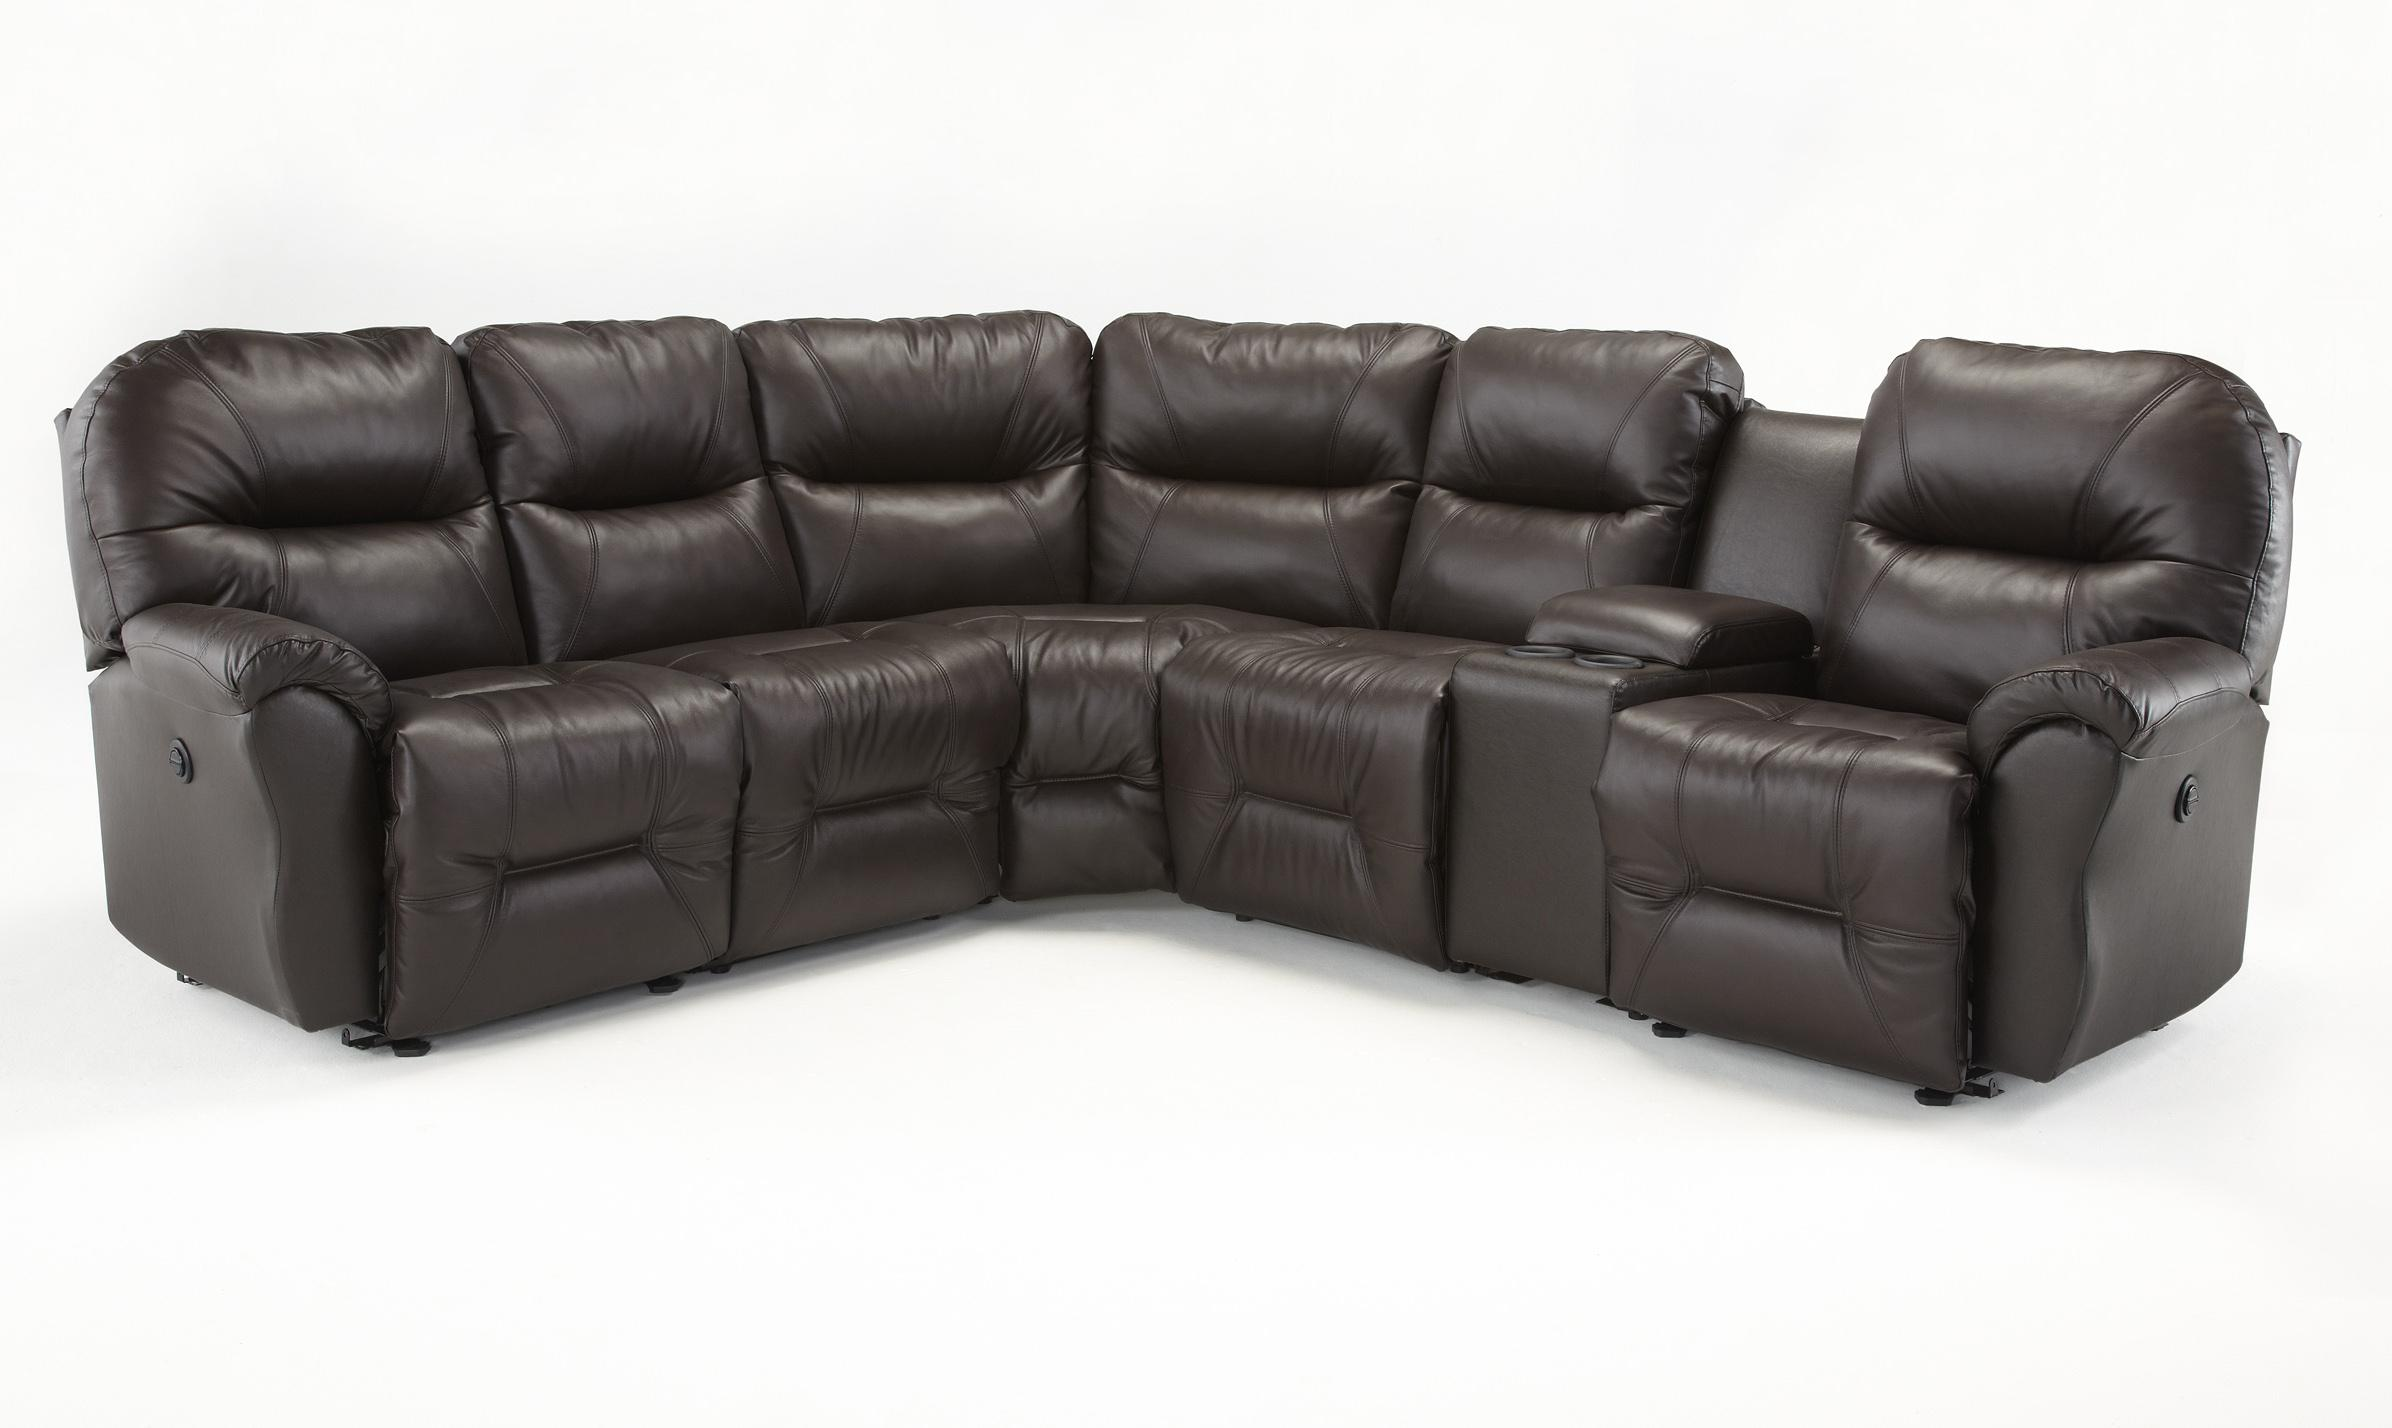 Six Piece Reclining Sectional Sofa by Best Home Furnishings